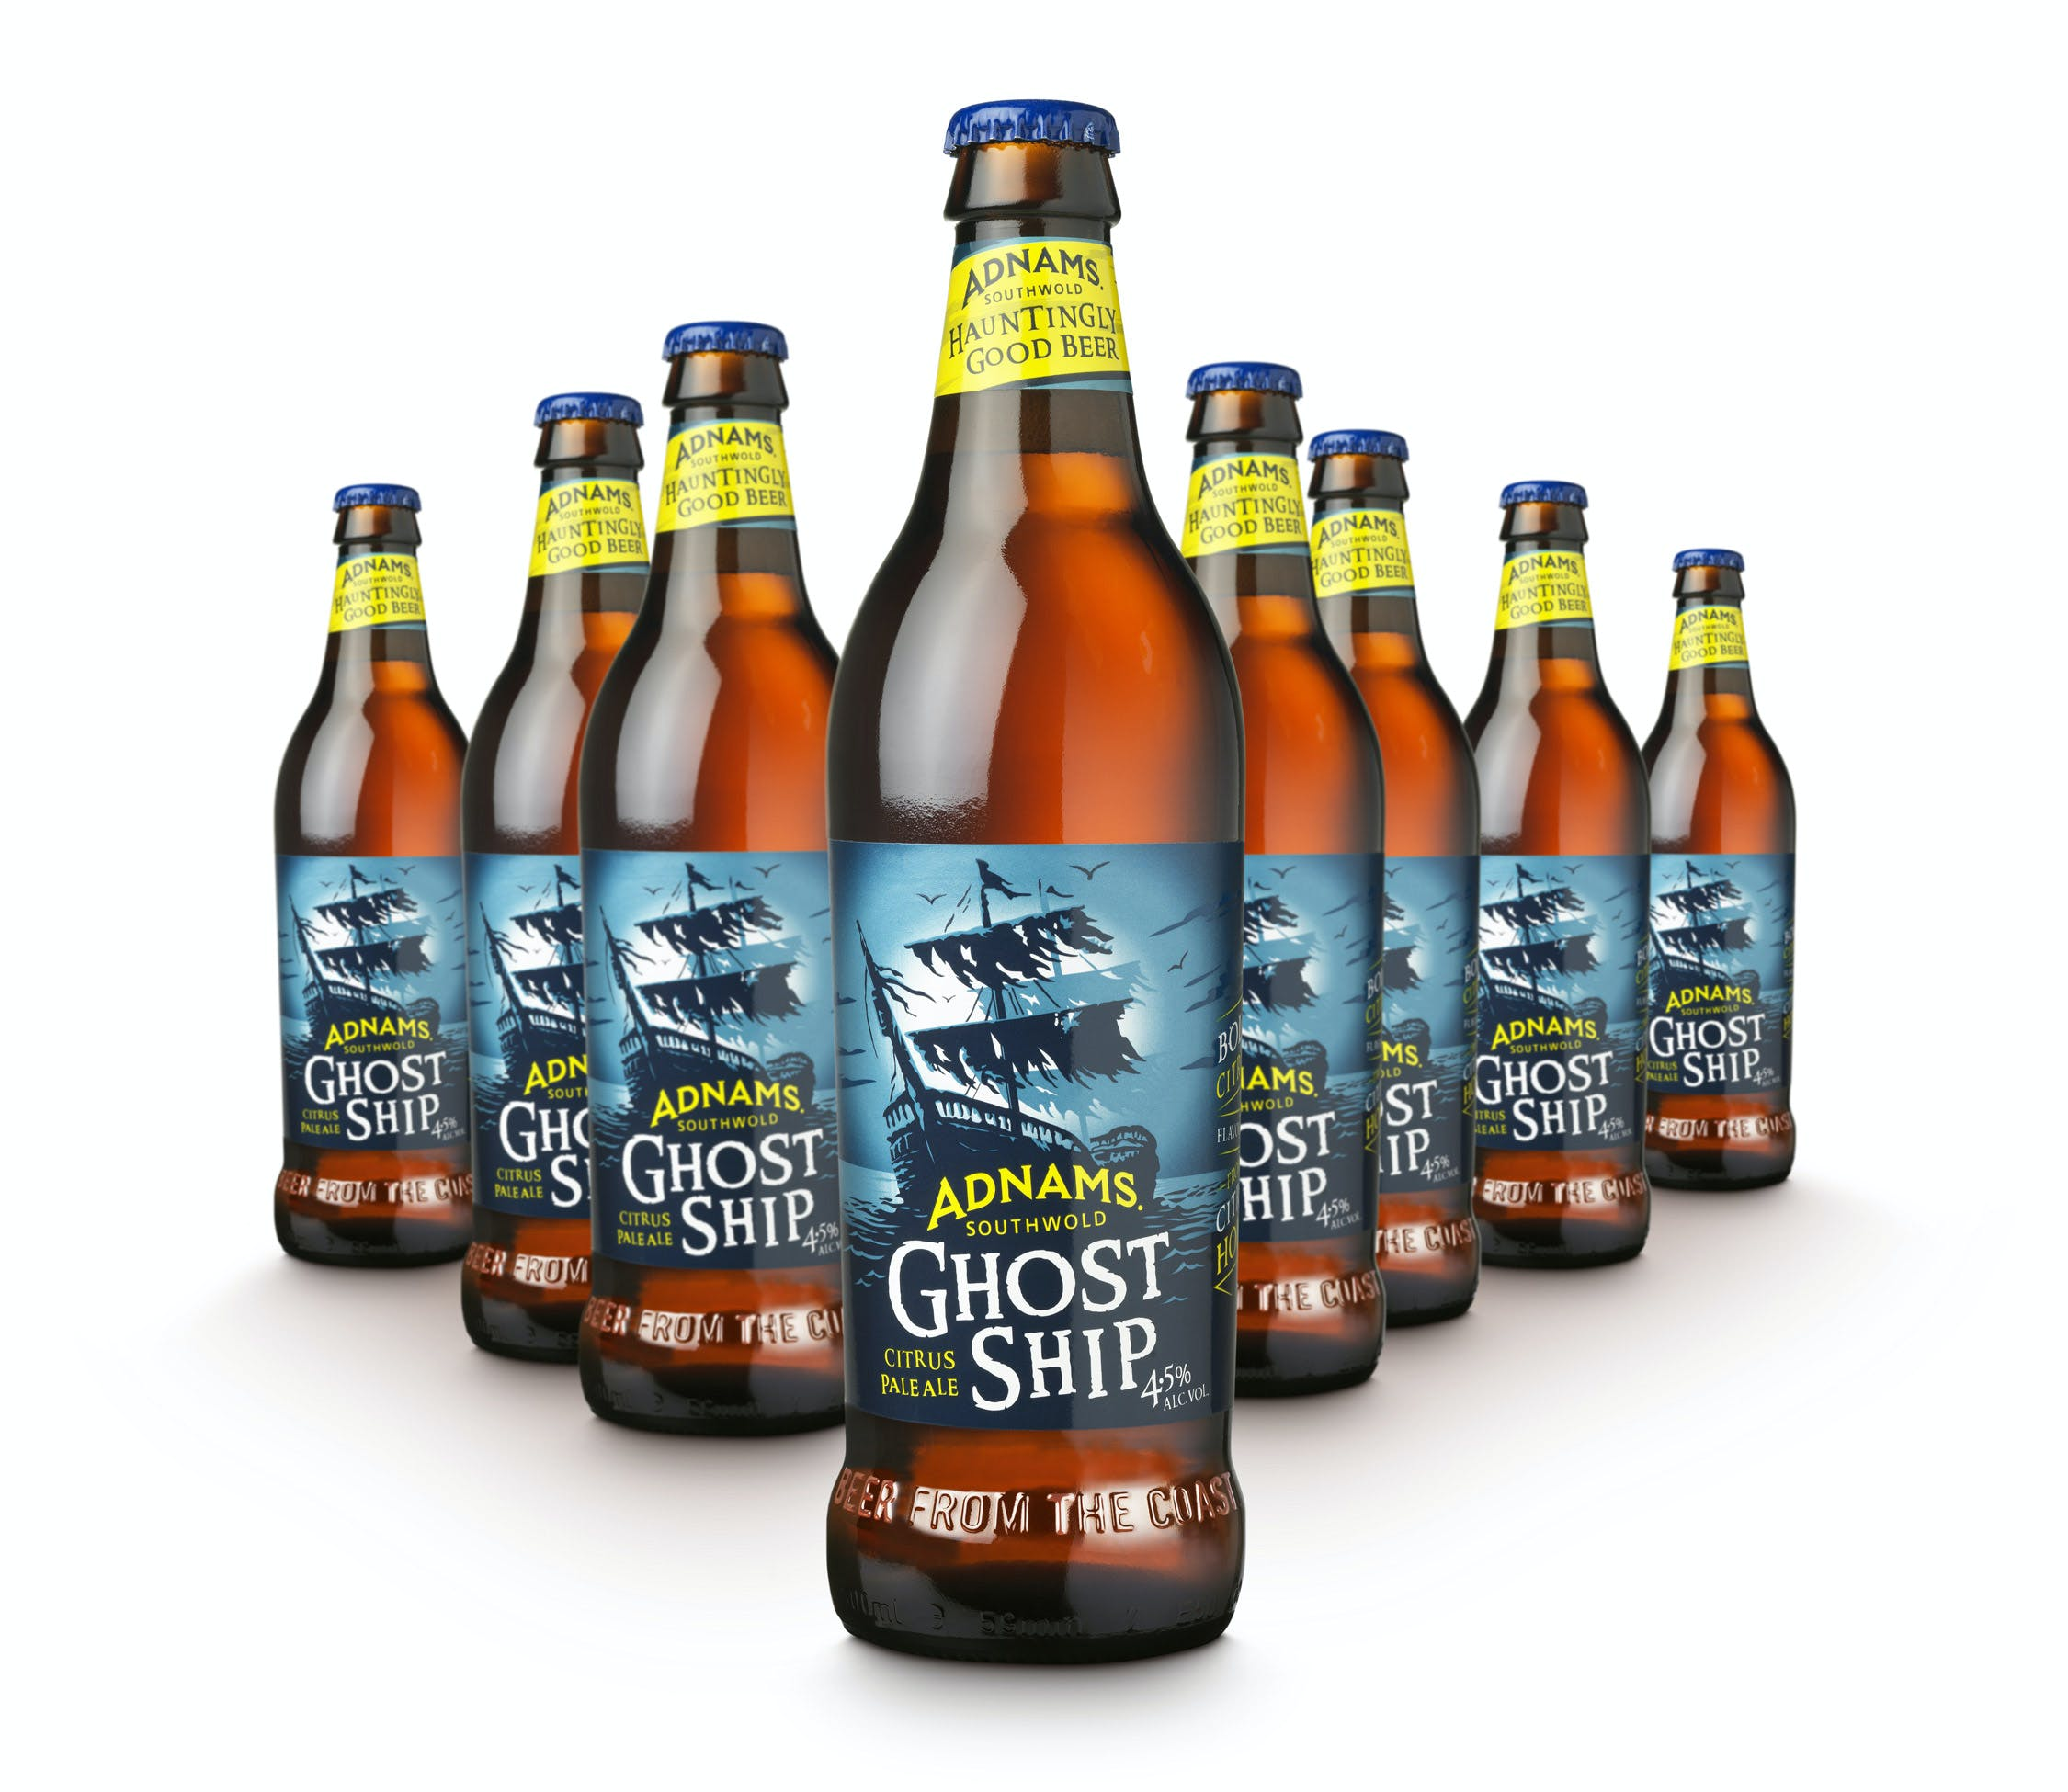 Stockists of Adnams Broadside